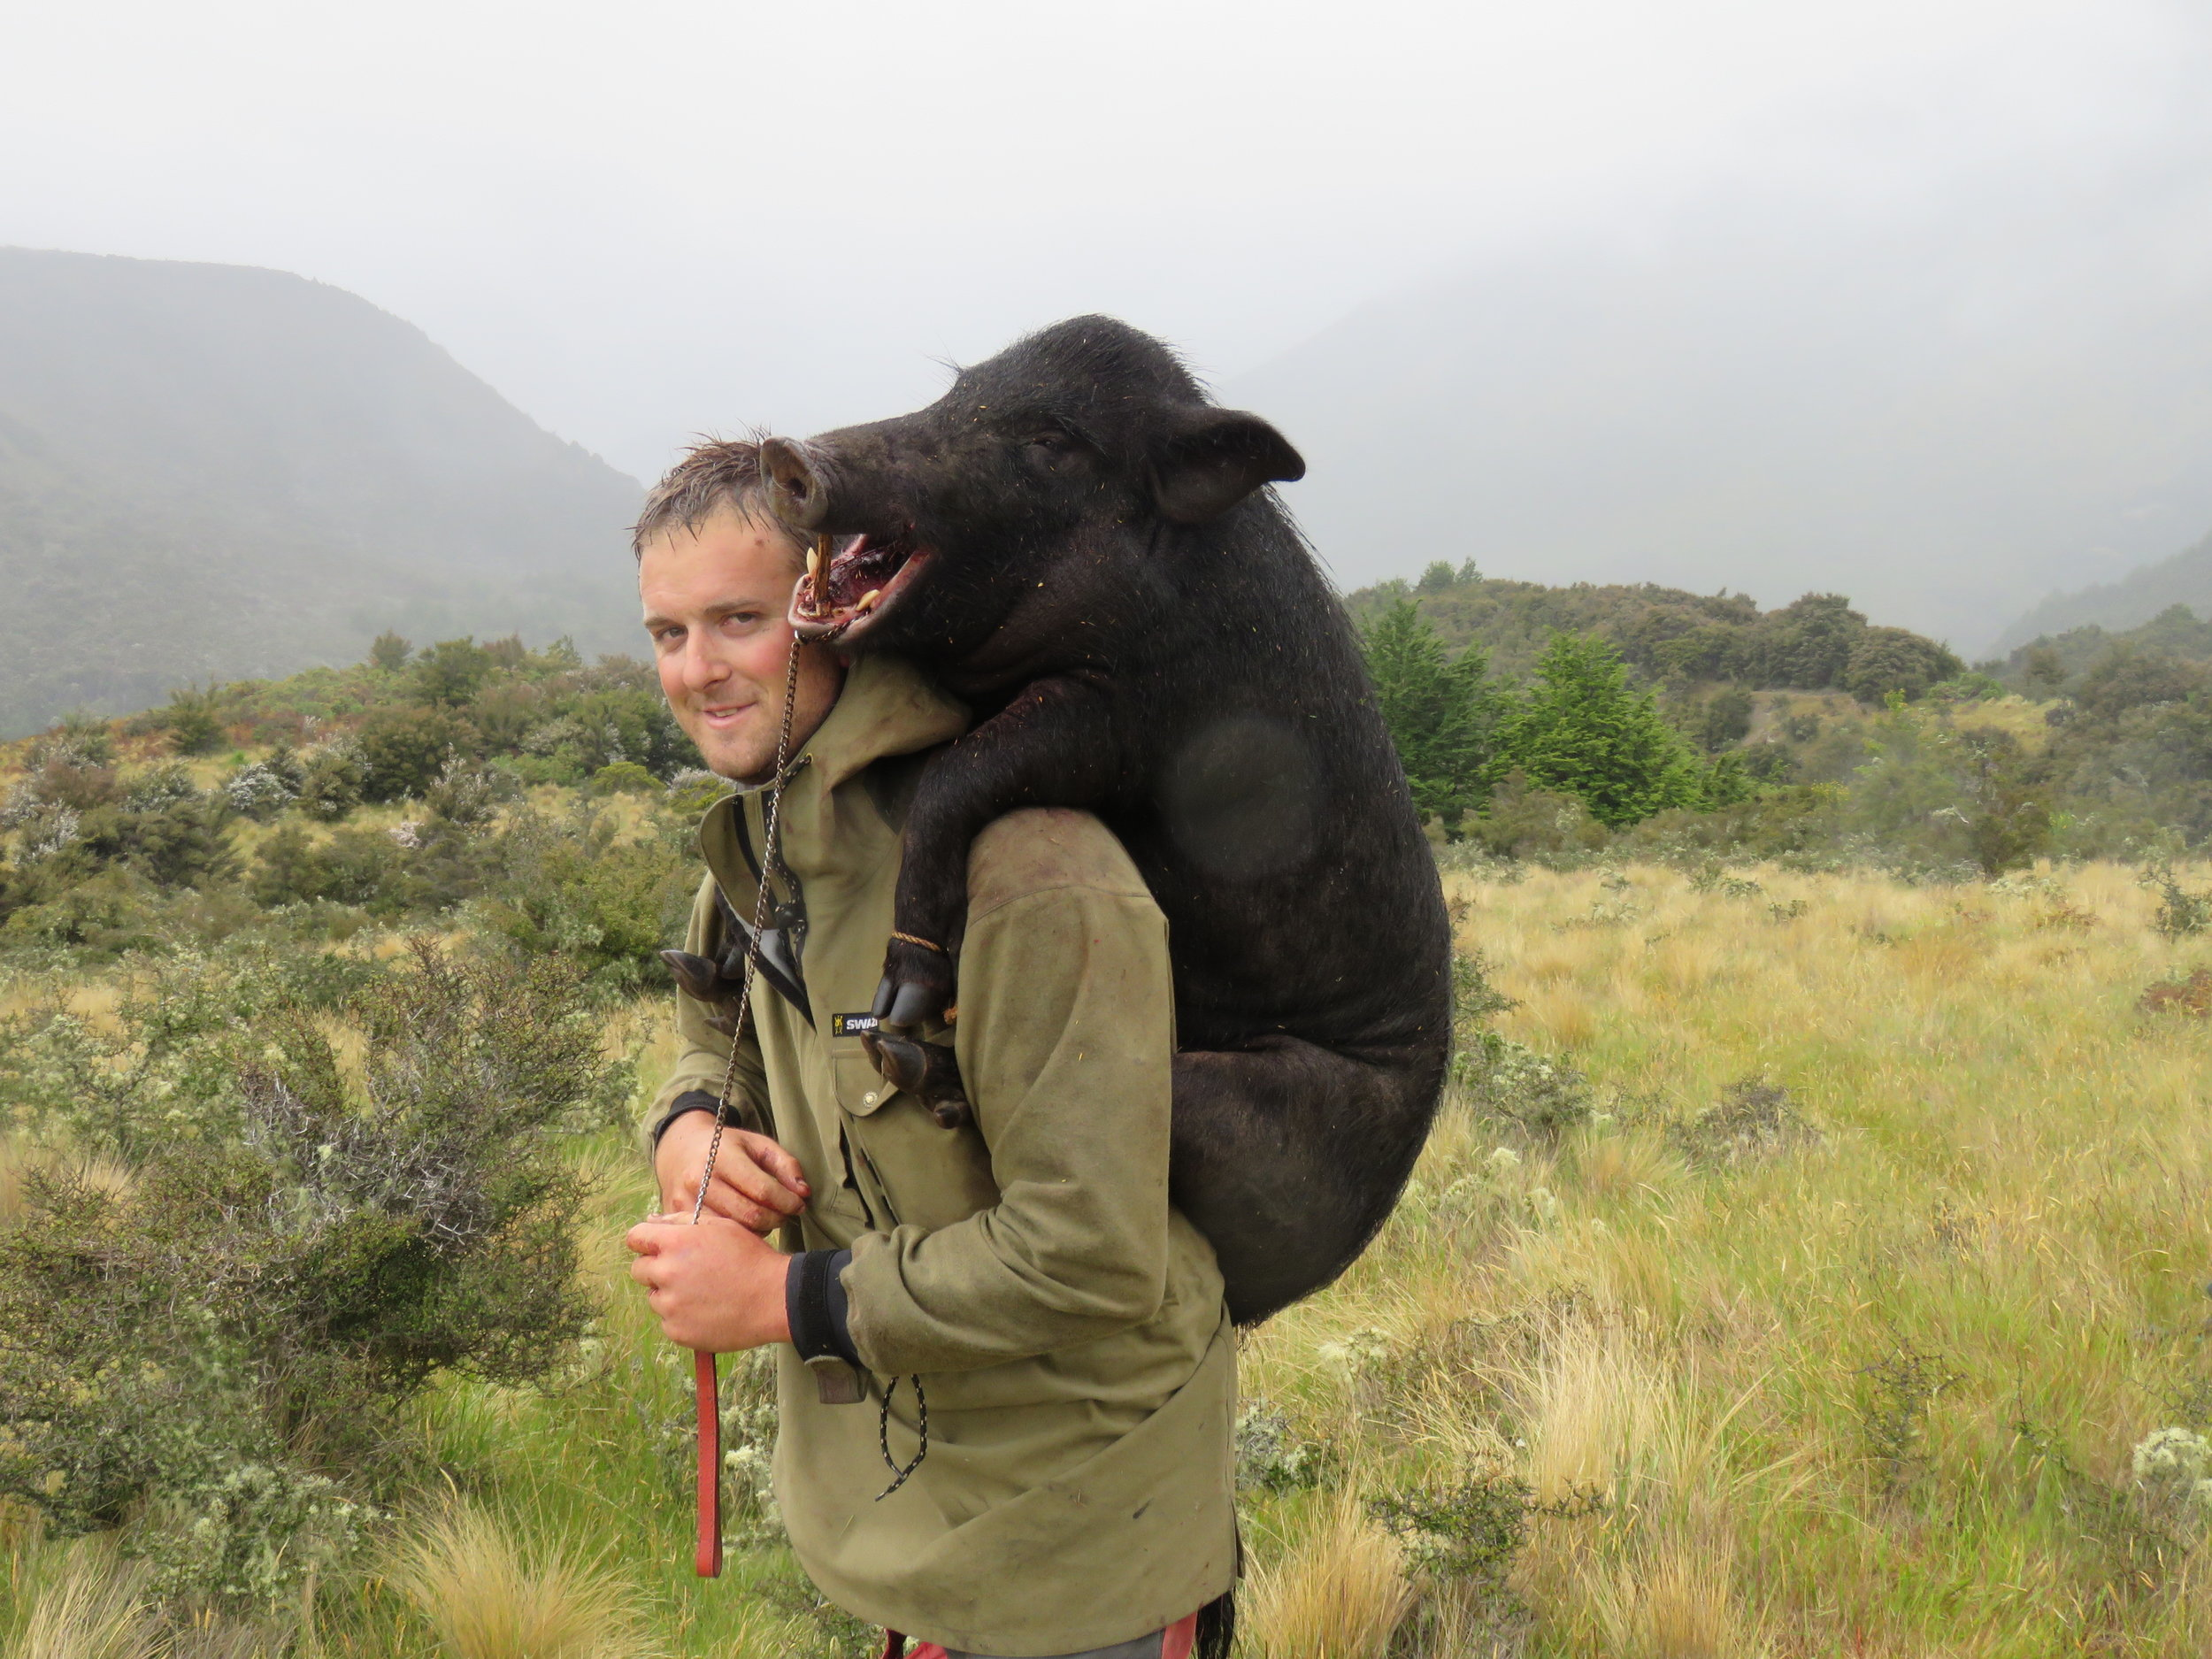 The Swazi Tahr anorak was a definite game changer in hunting apparel.